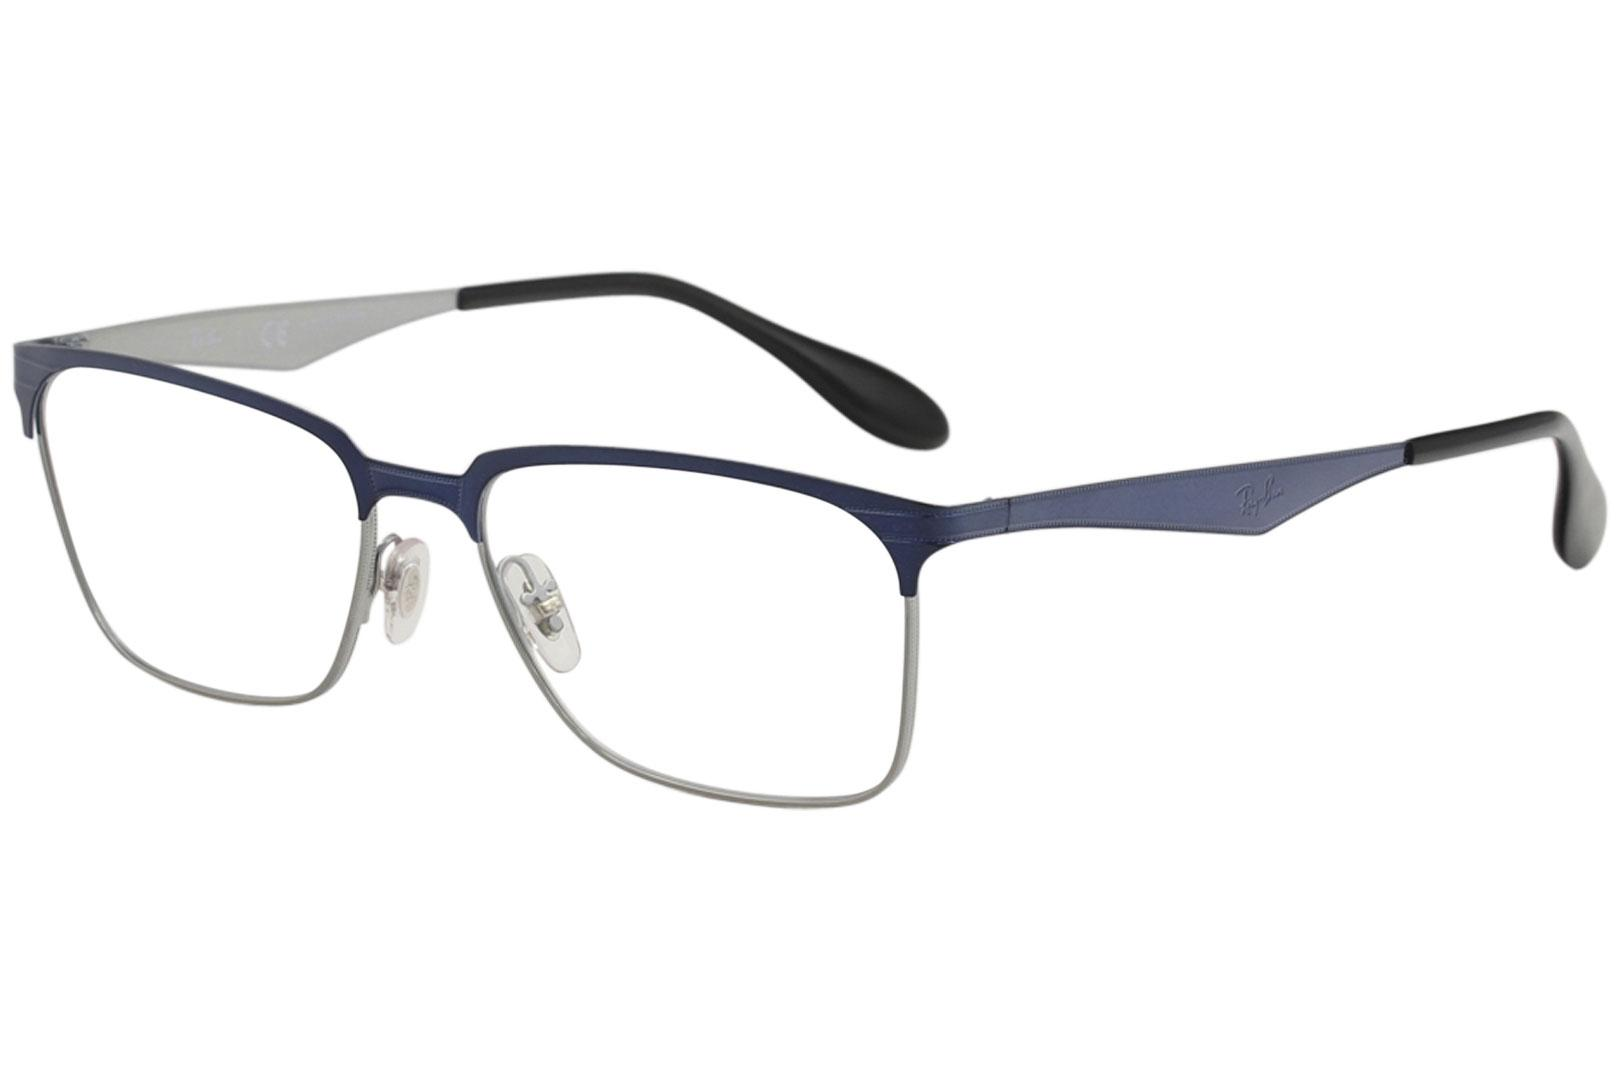 108fc35555b Ray Ban Men s Eyeglasses RX6344 RX 6344 Full Rim Optical Frame by Ray Ban